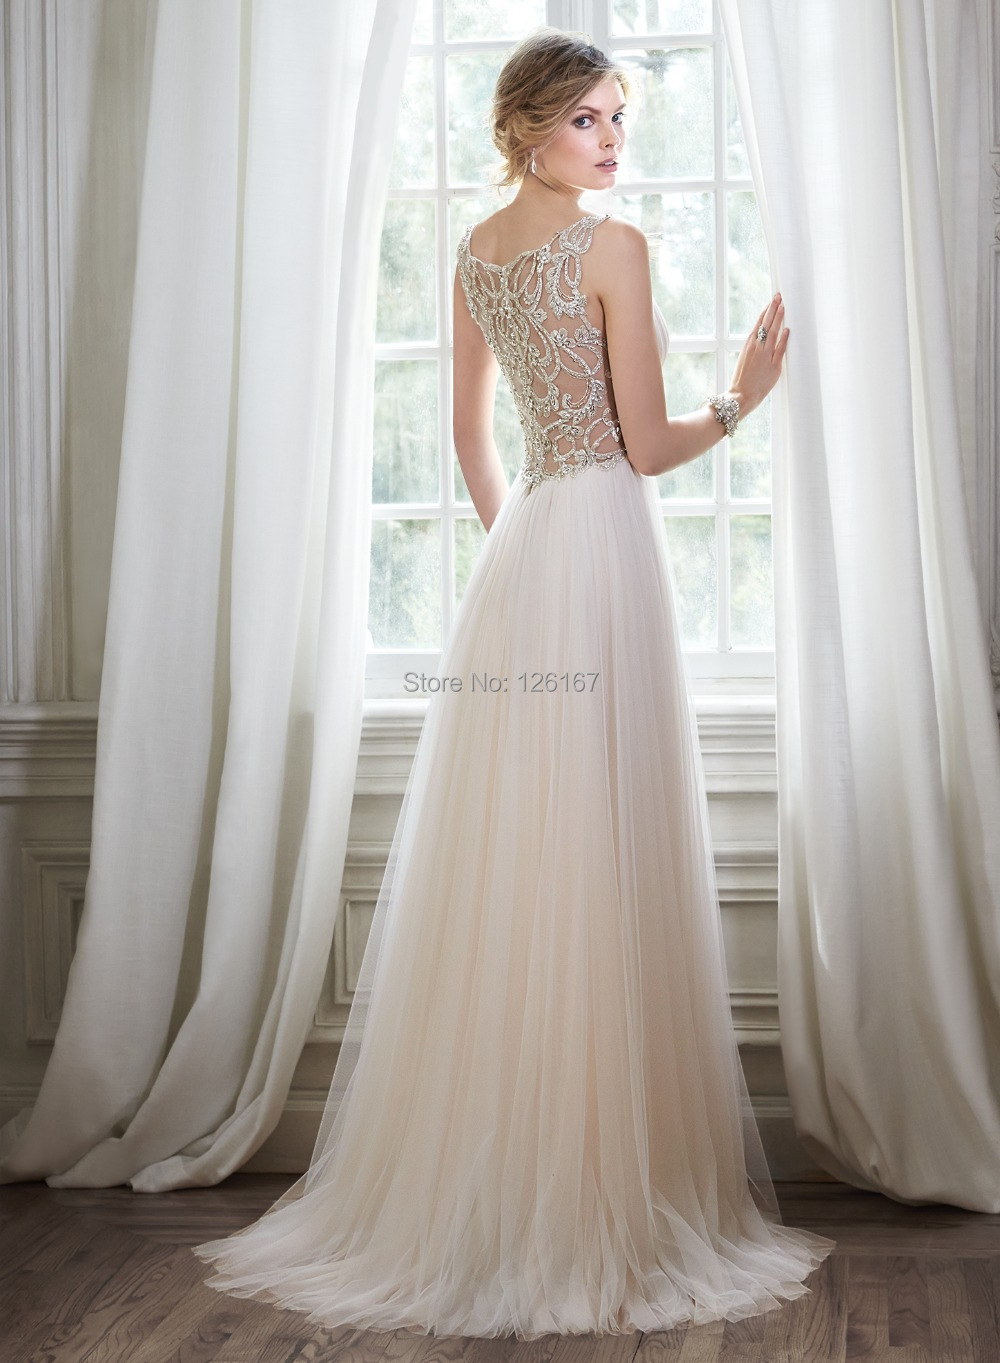 Garden Style Wedding Dresses 2017 New Arrival Bridal Dress Cap Sleeve V Neck Crystal Beads Transpa Back Tulle In From